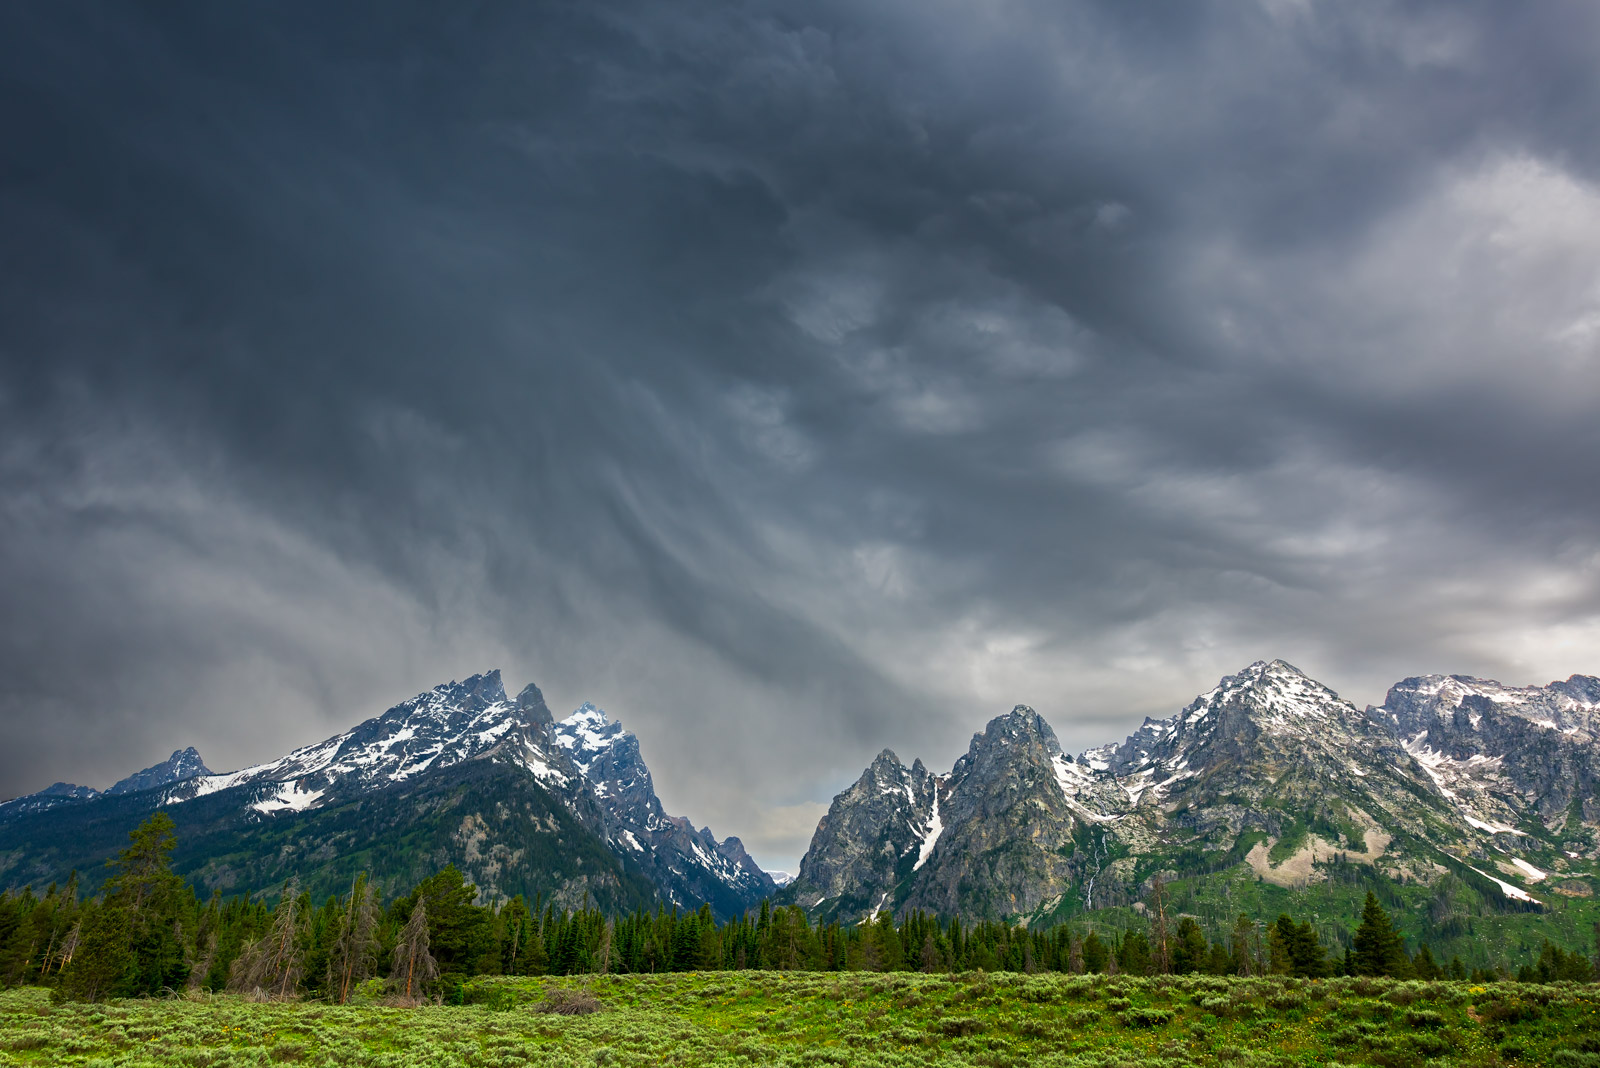 Wyoming, Tetons, Grand Tetons, storm, clouds, limited edition, photograph, fine art, landscape, photo